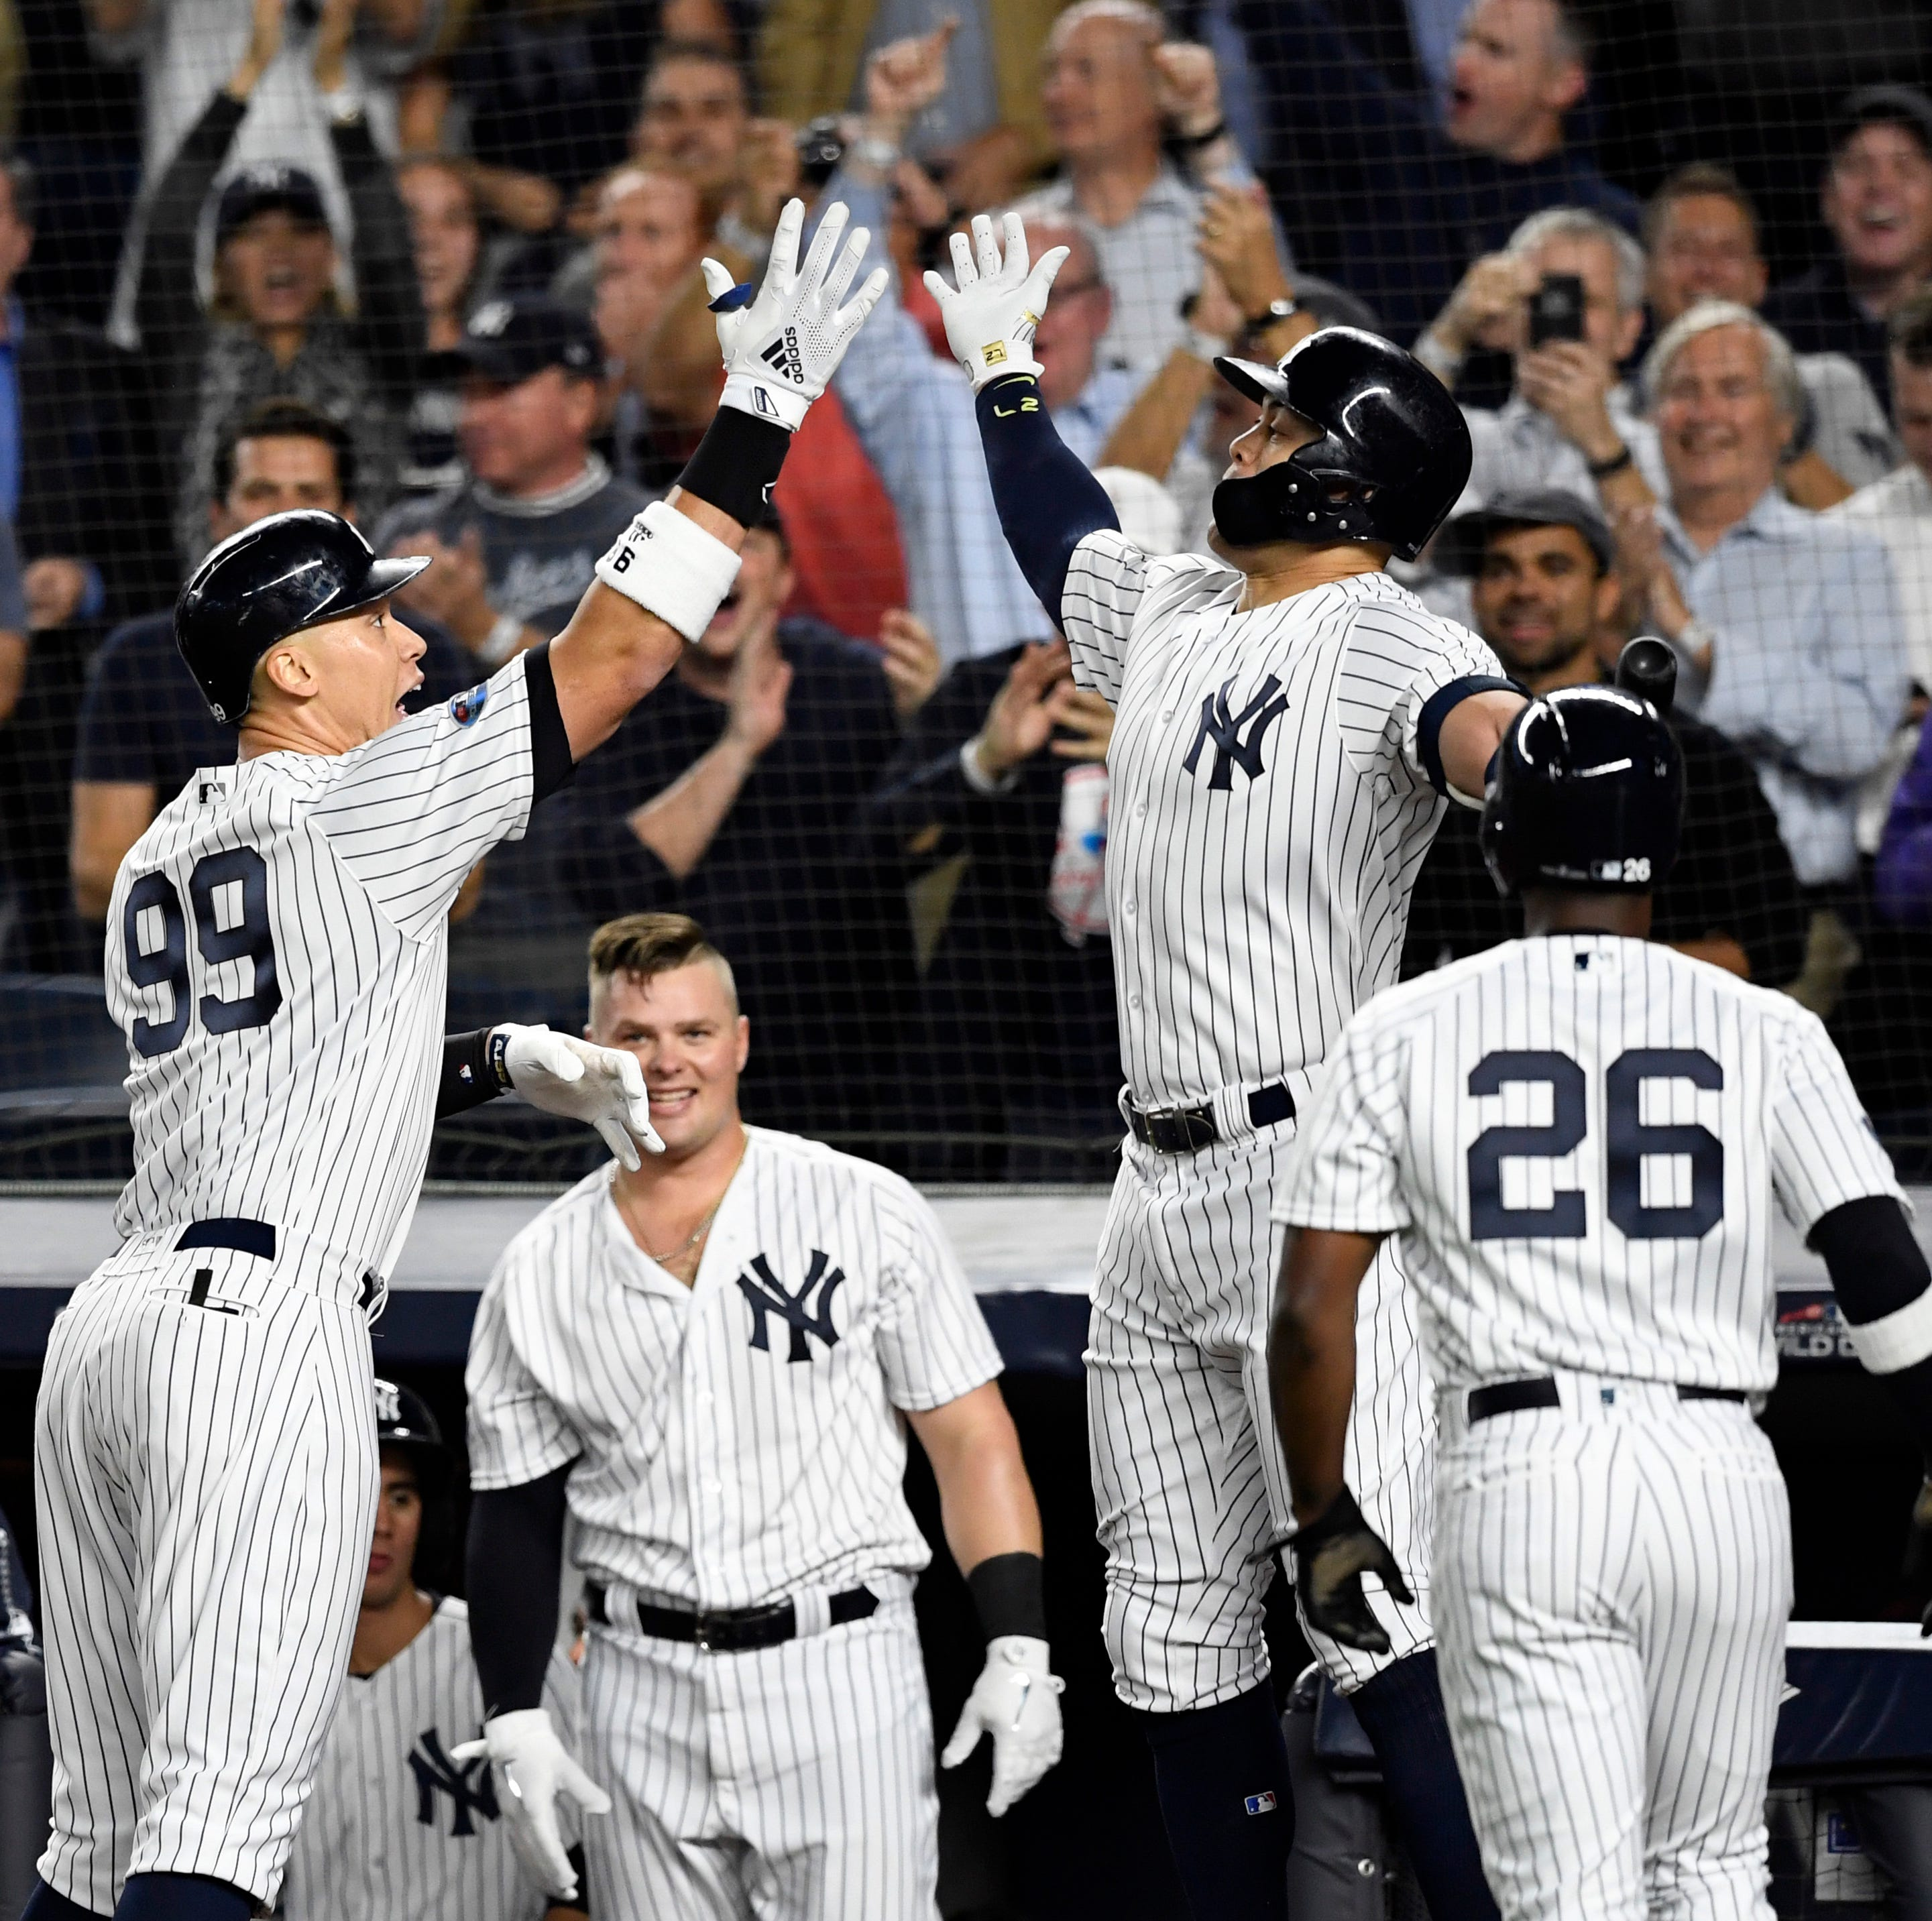 New York Yankees position player review and outlook for 2019 season